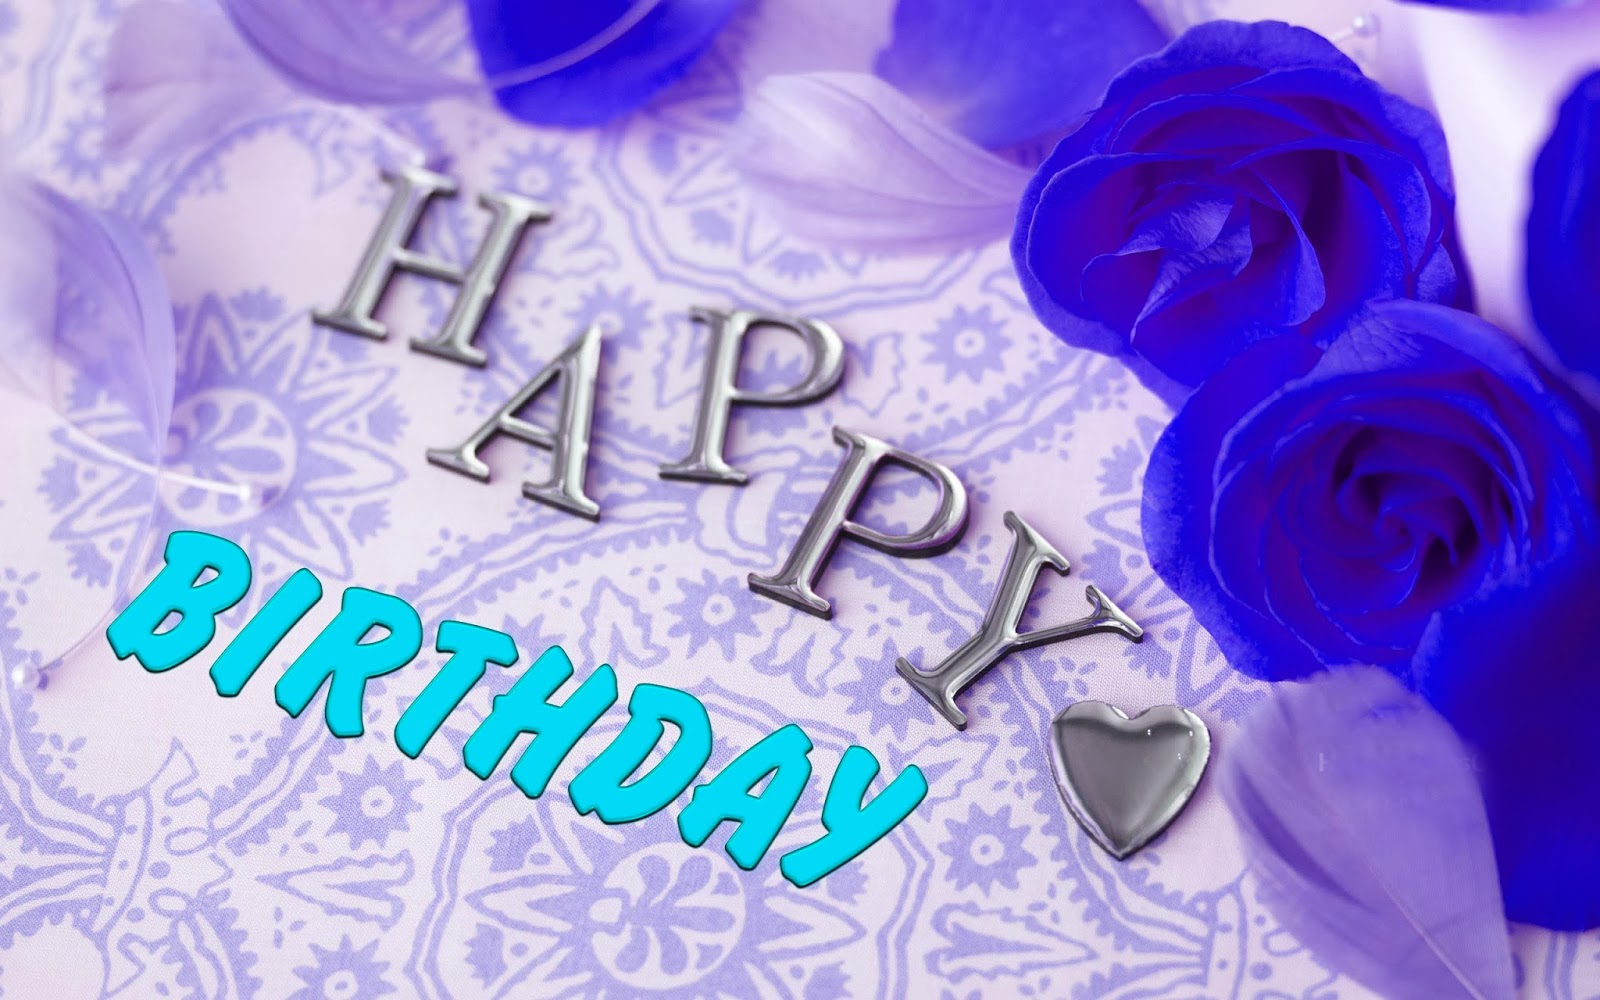 Beautiful Birthday Wallpaper : birthday wishes hd wallpapers birthday wishes for someone special ...